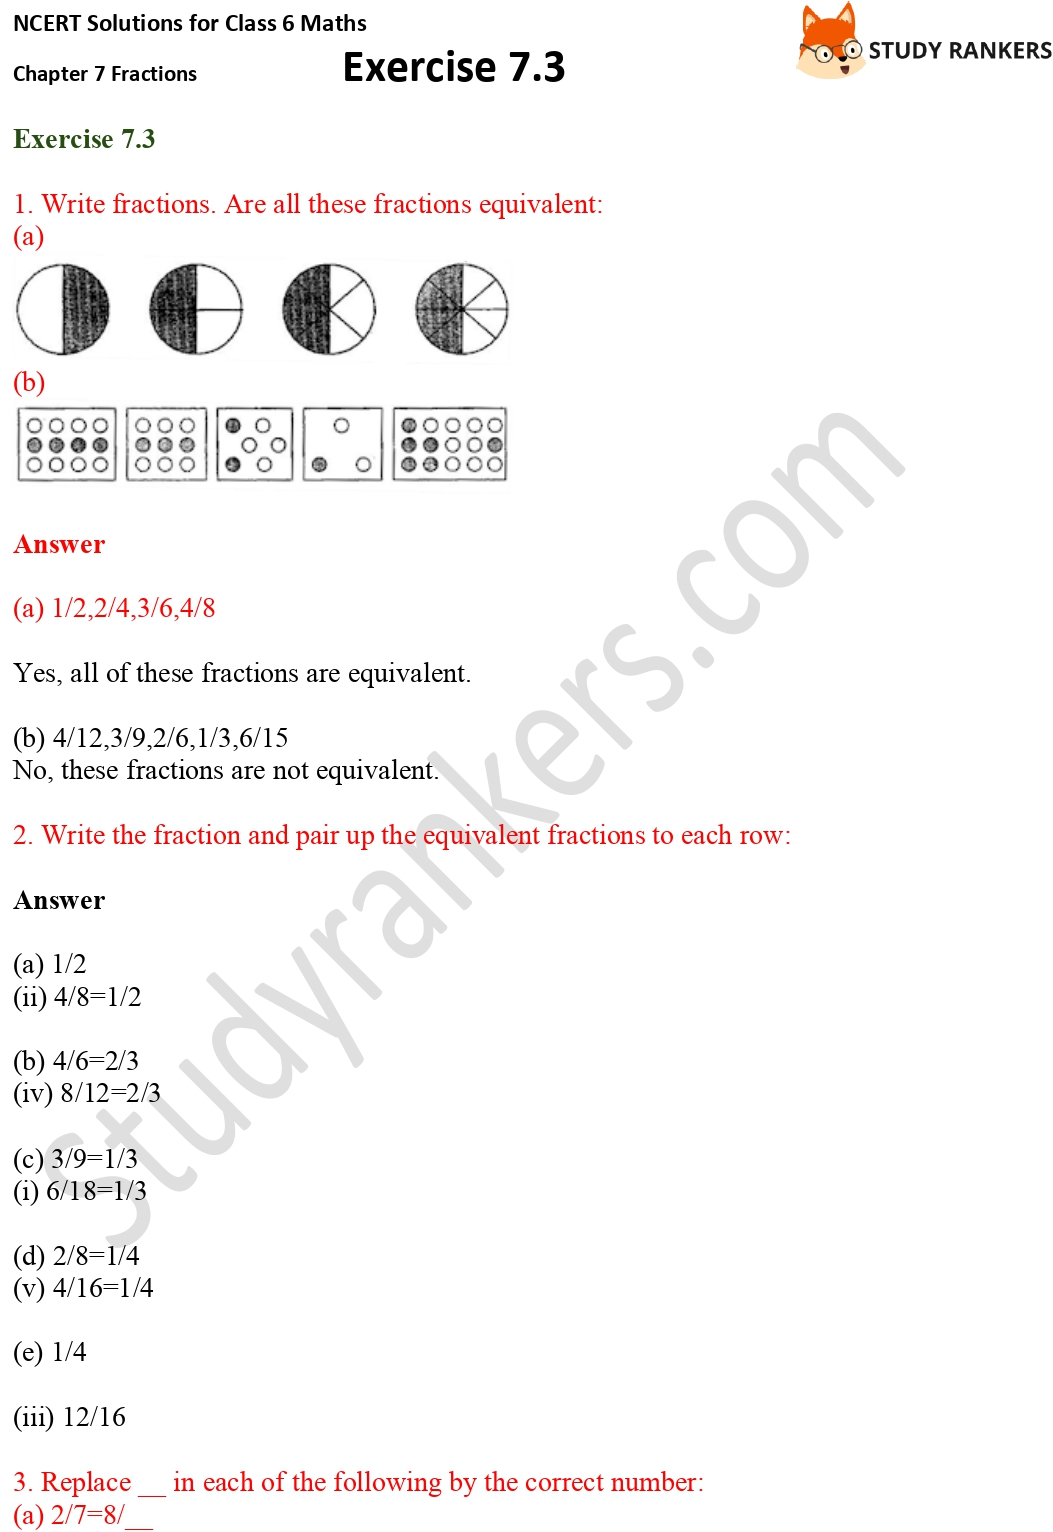 NCERT Solutions for Class 6 Maths Chapter 7 Fractions Exercise 7.3 Part 1